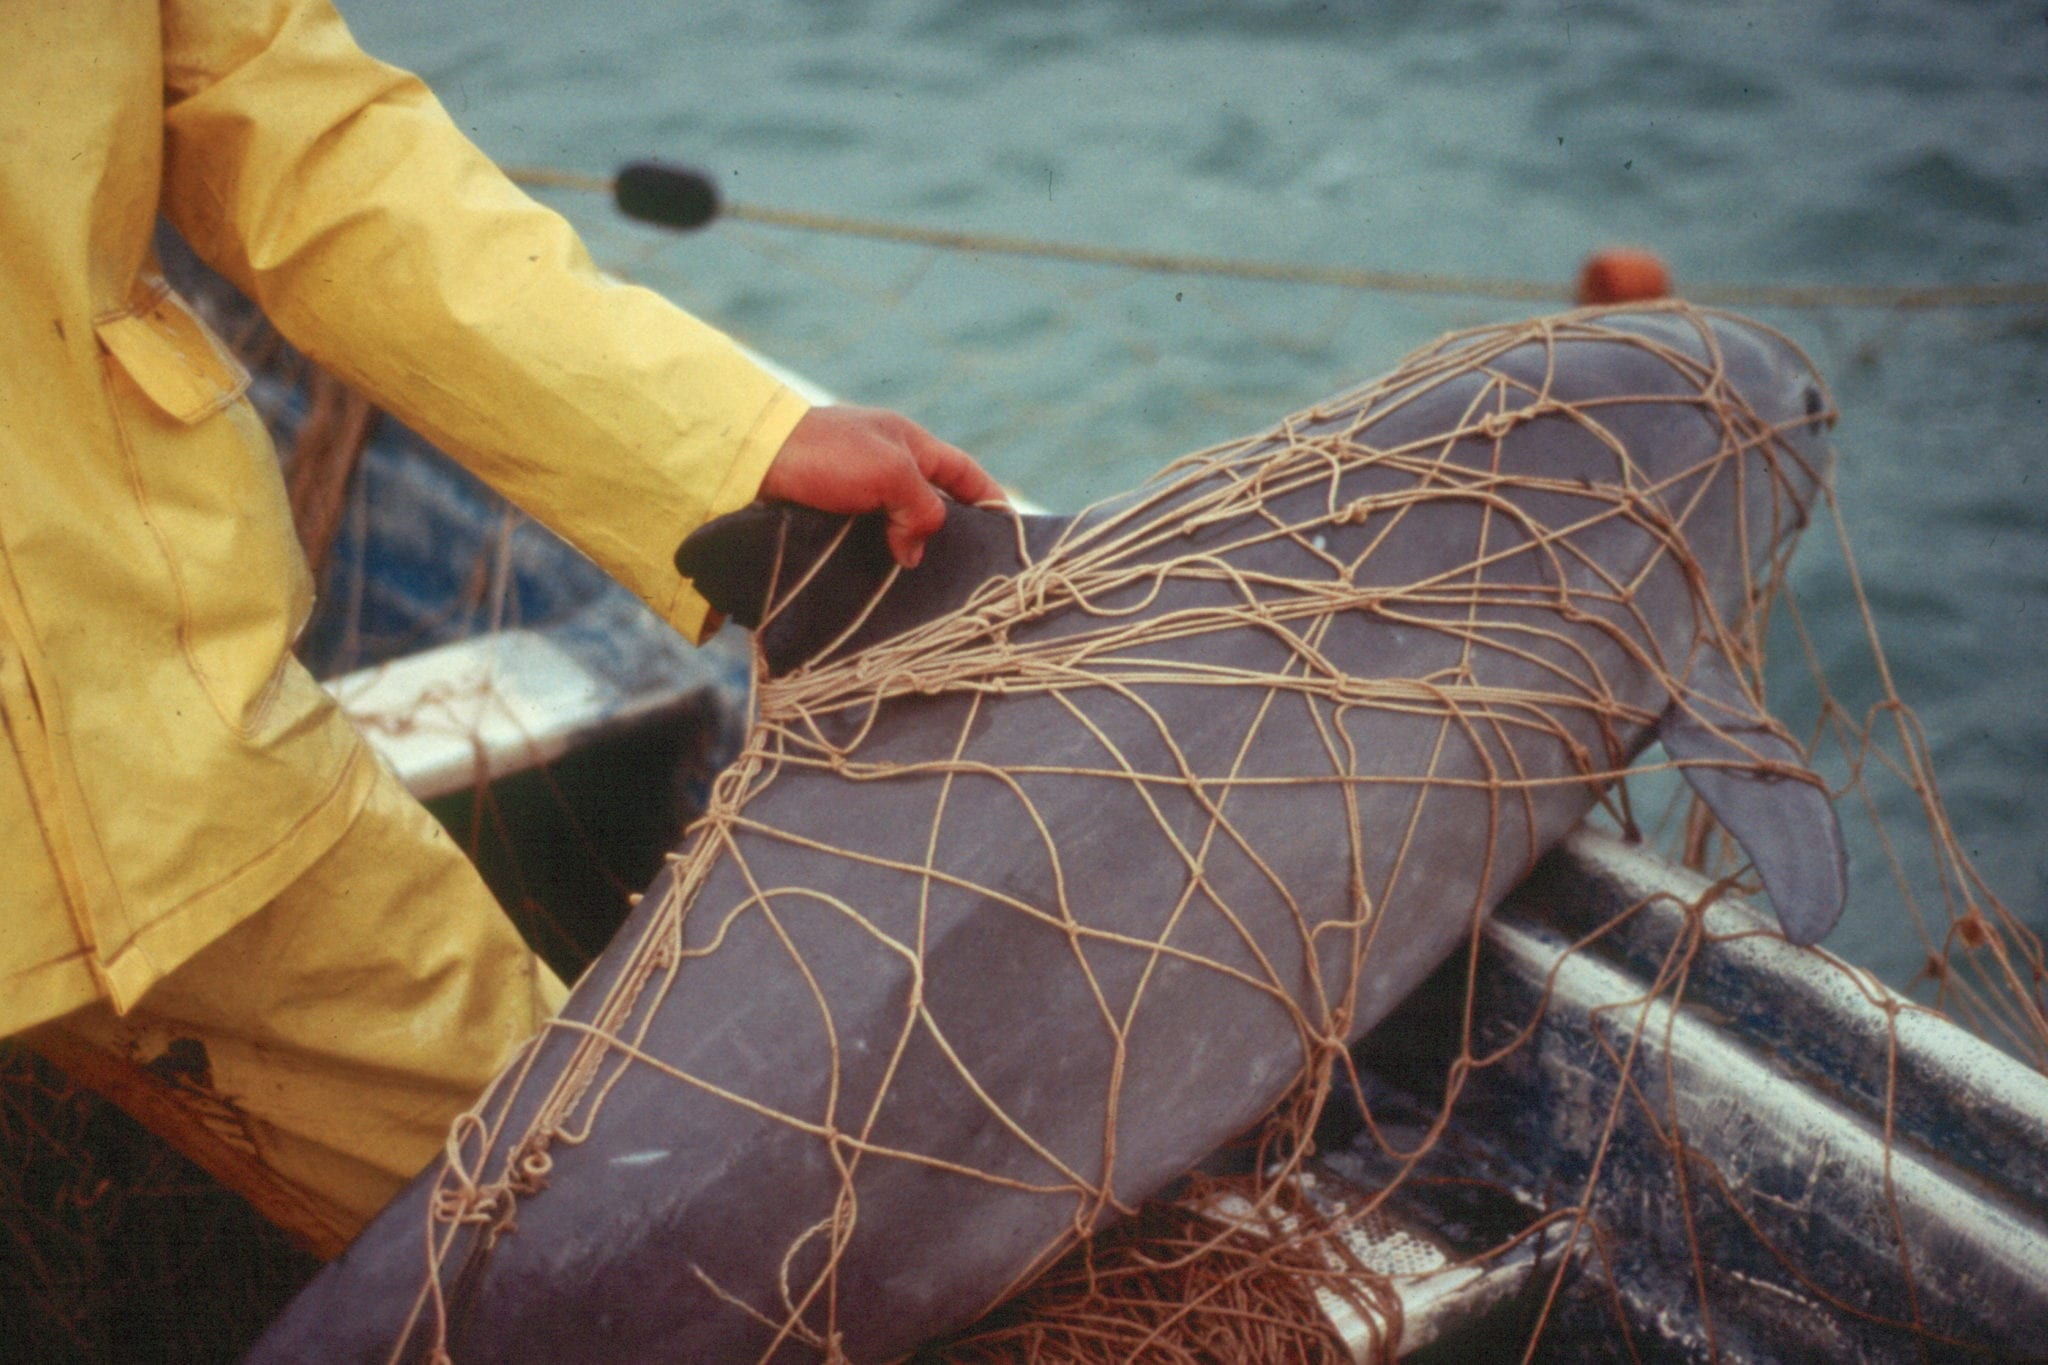 Photo by Omar Vidal